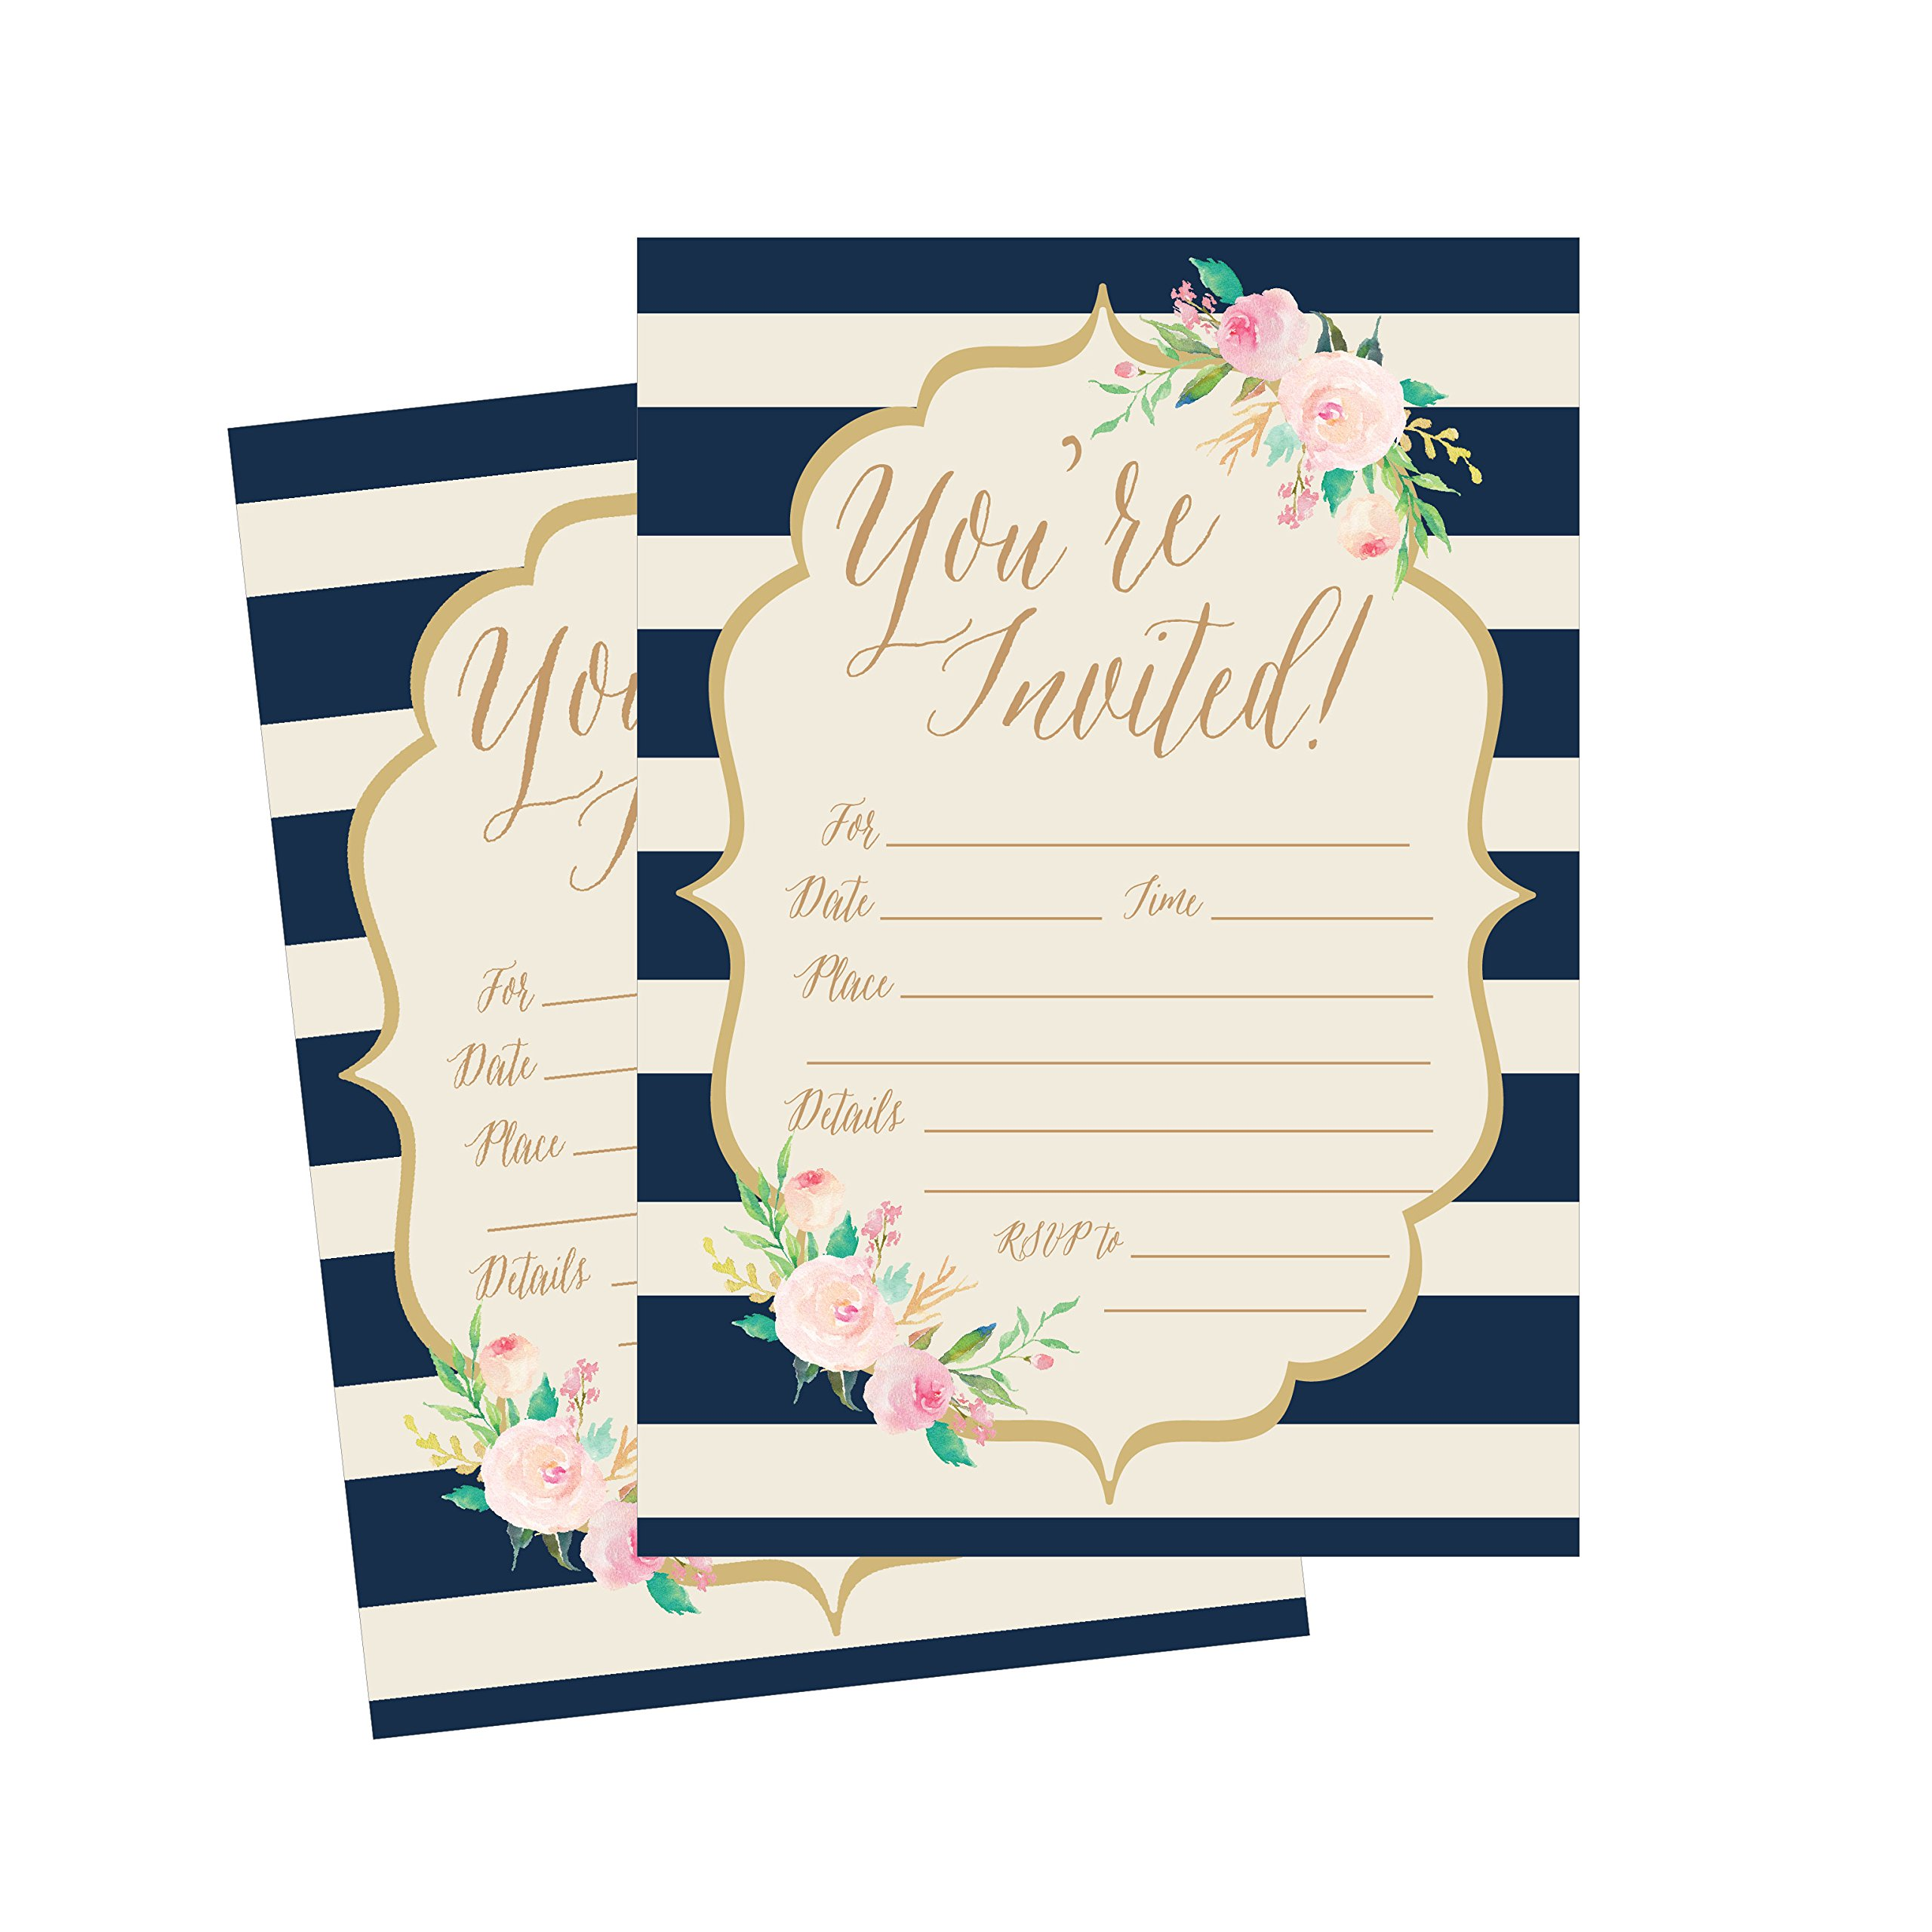 50 Navy Invitations, Bridal Shower Invite, Baby Shower Invitations, Wedding, Rehearsal Dinner Invites, Engagement, Bachelorette Party, Reception Party, Anniversary, Housewarming, Graduation, Sweet 16 by Hadley Designs